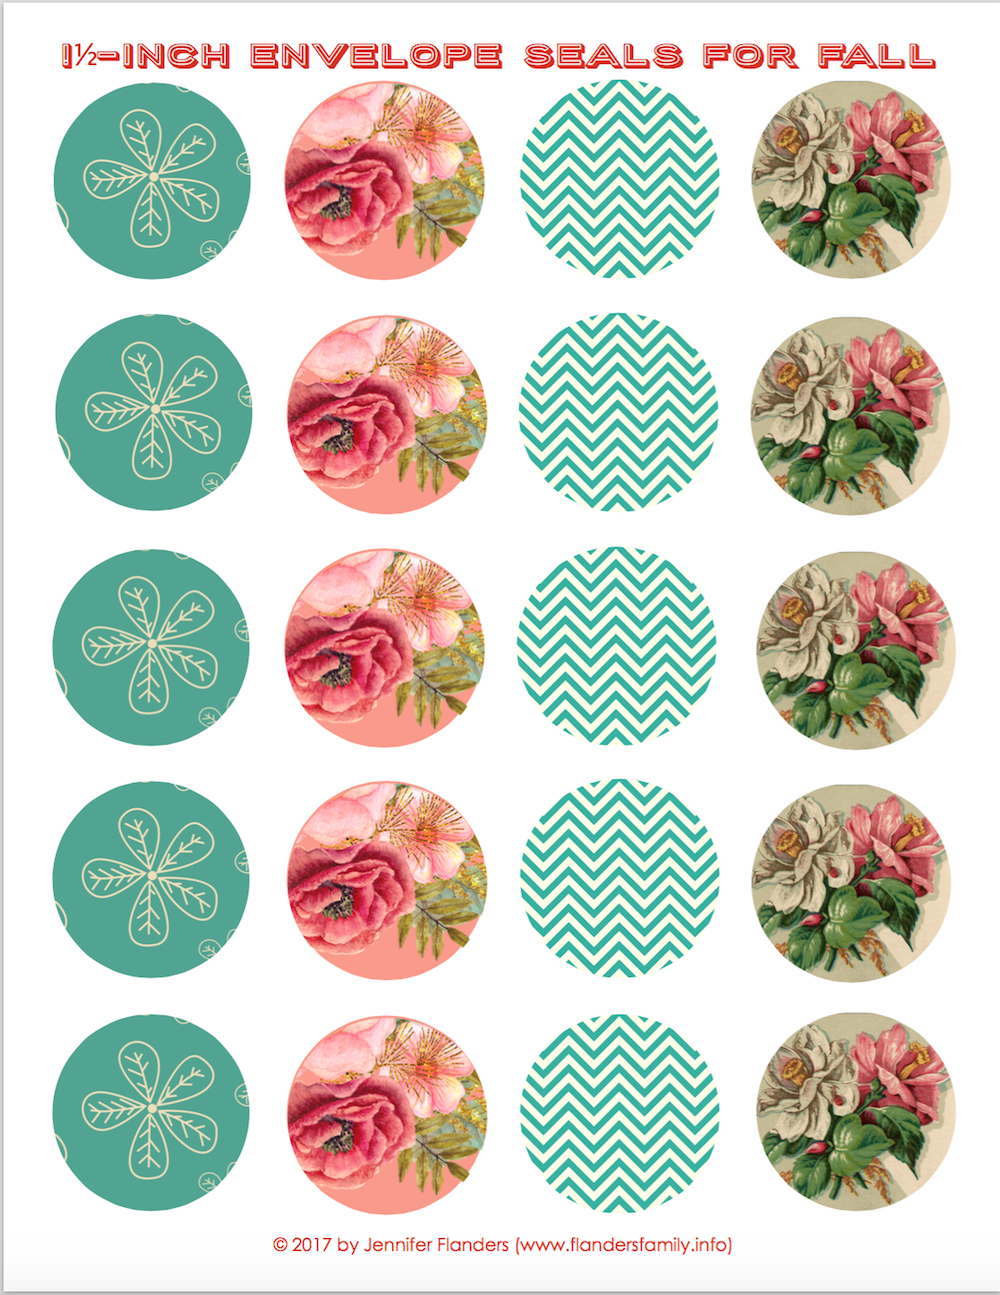 Beautiful! Free printable envelope seals (and coordinating cards) from www.flandersfamily.info